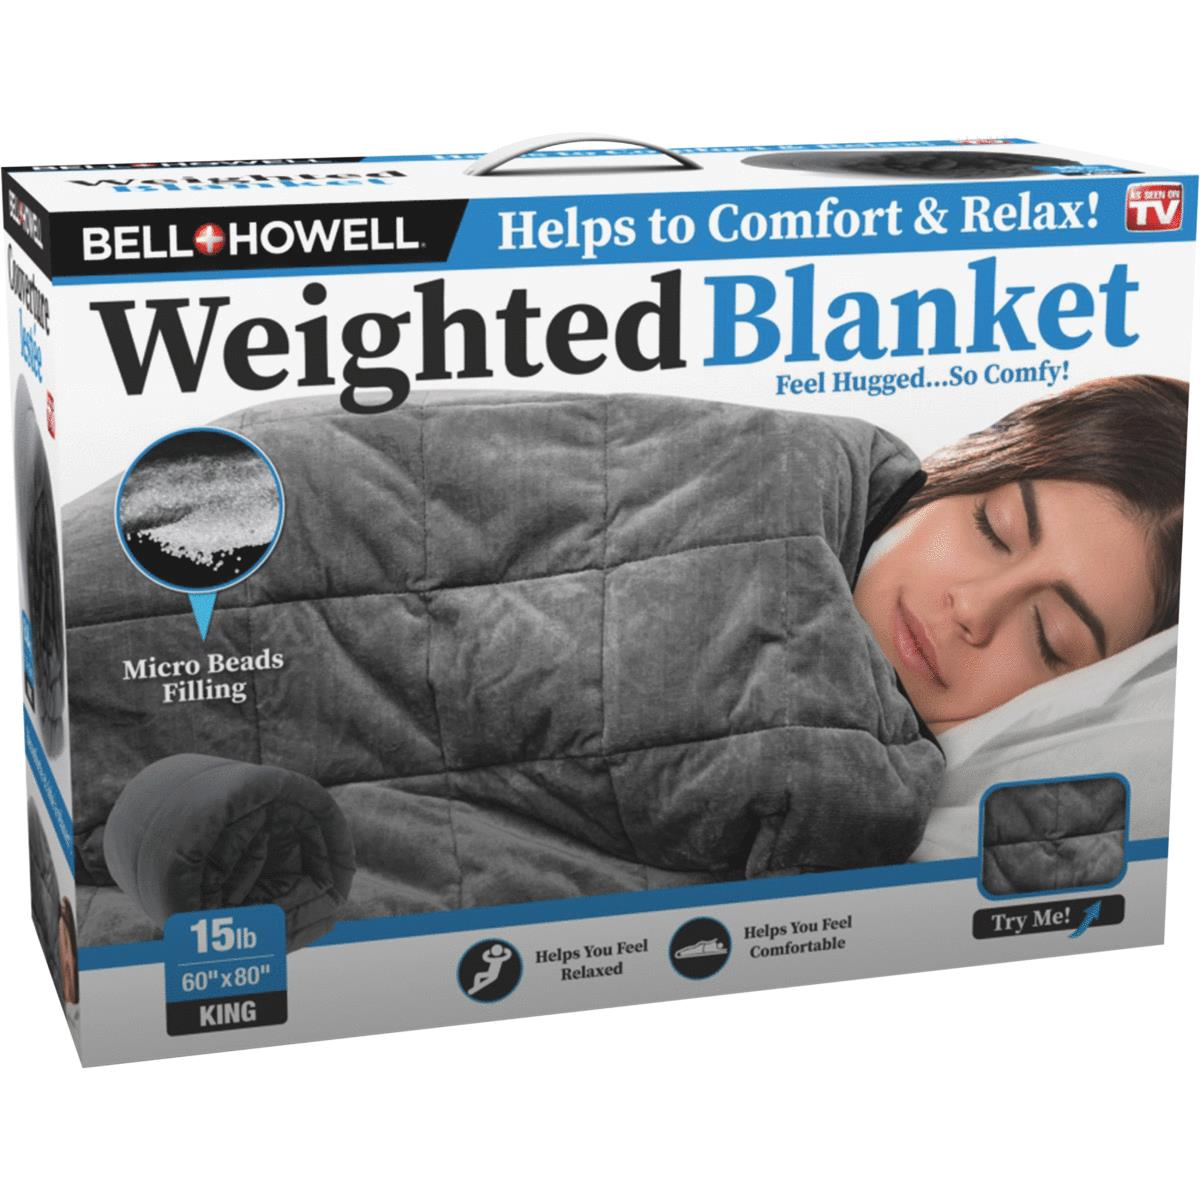 Bell+Howell Weighted Blanket